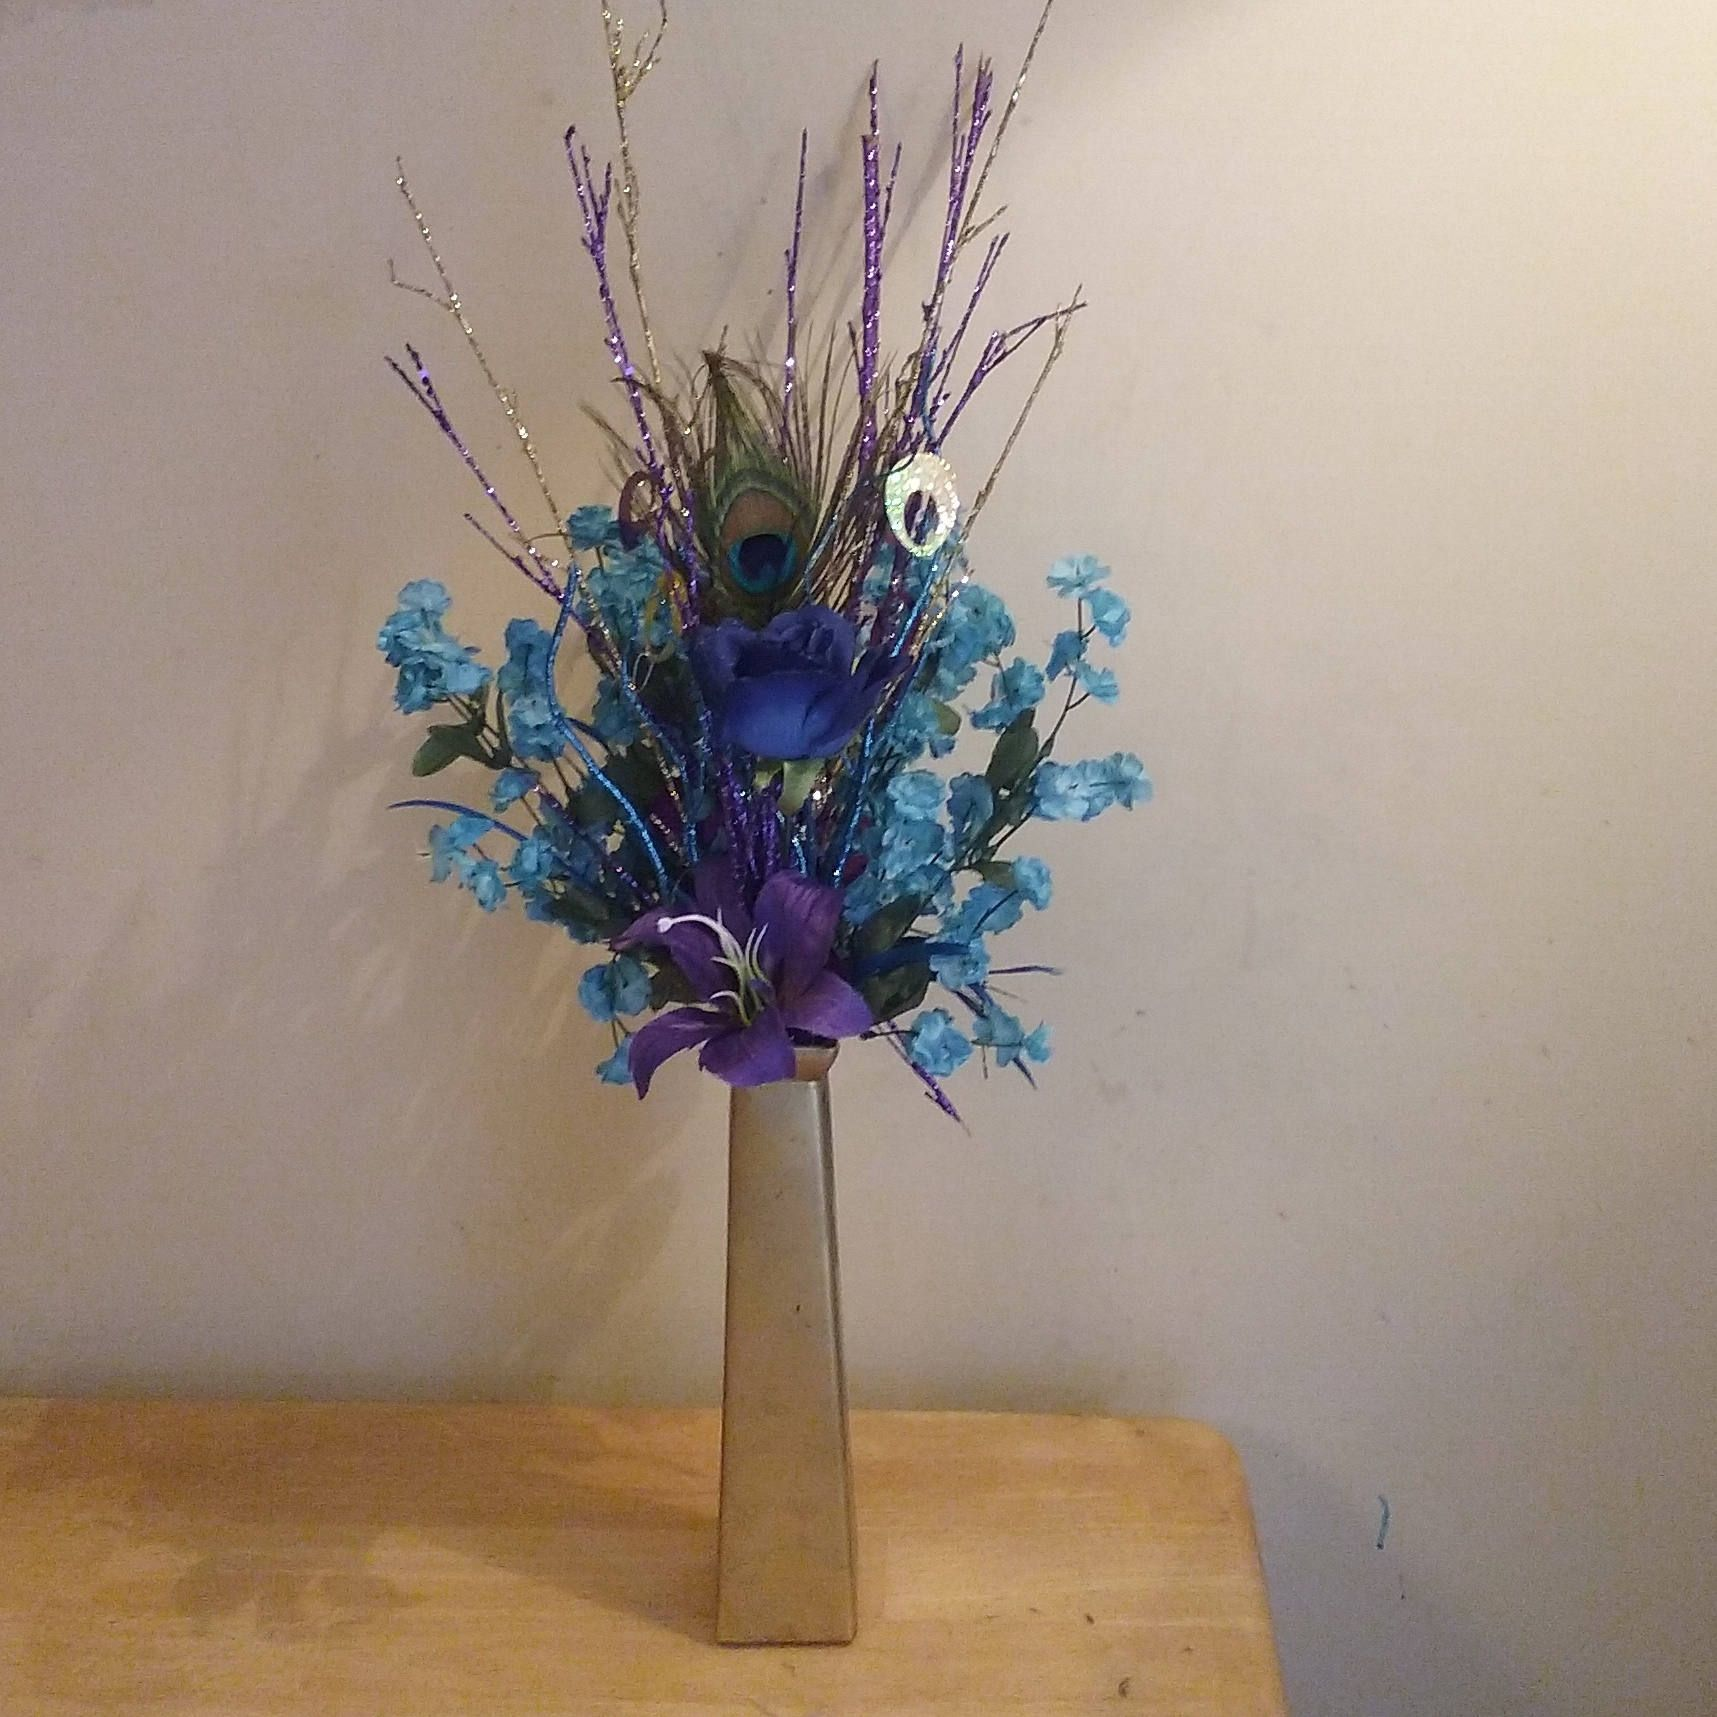 Peacock Wedding Ideas Etsy: Sparkling Peacock Centerpiece With Glitter Branches By